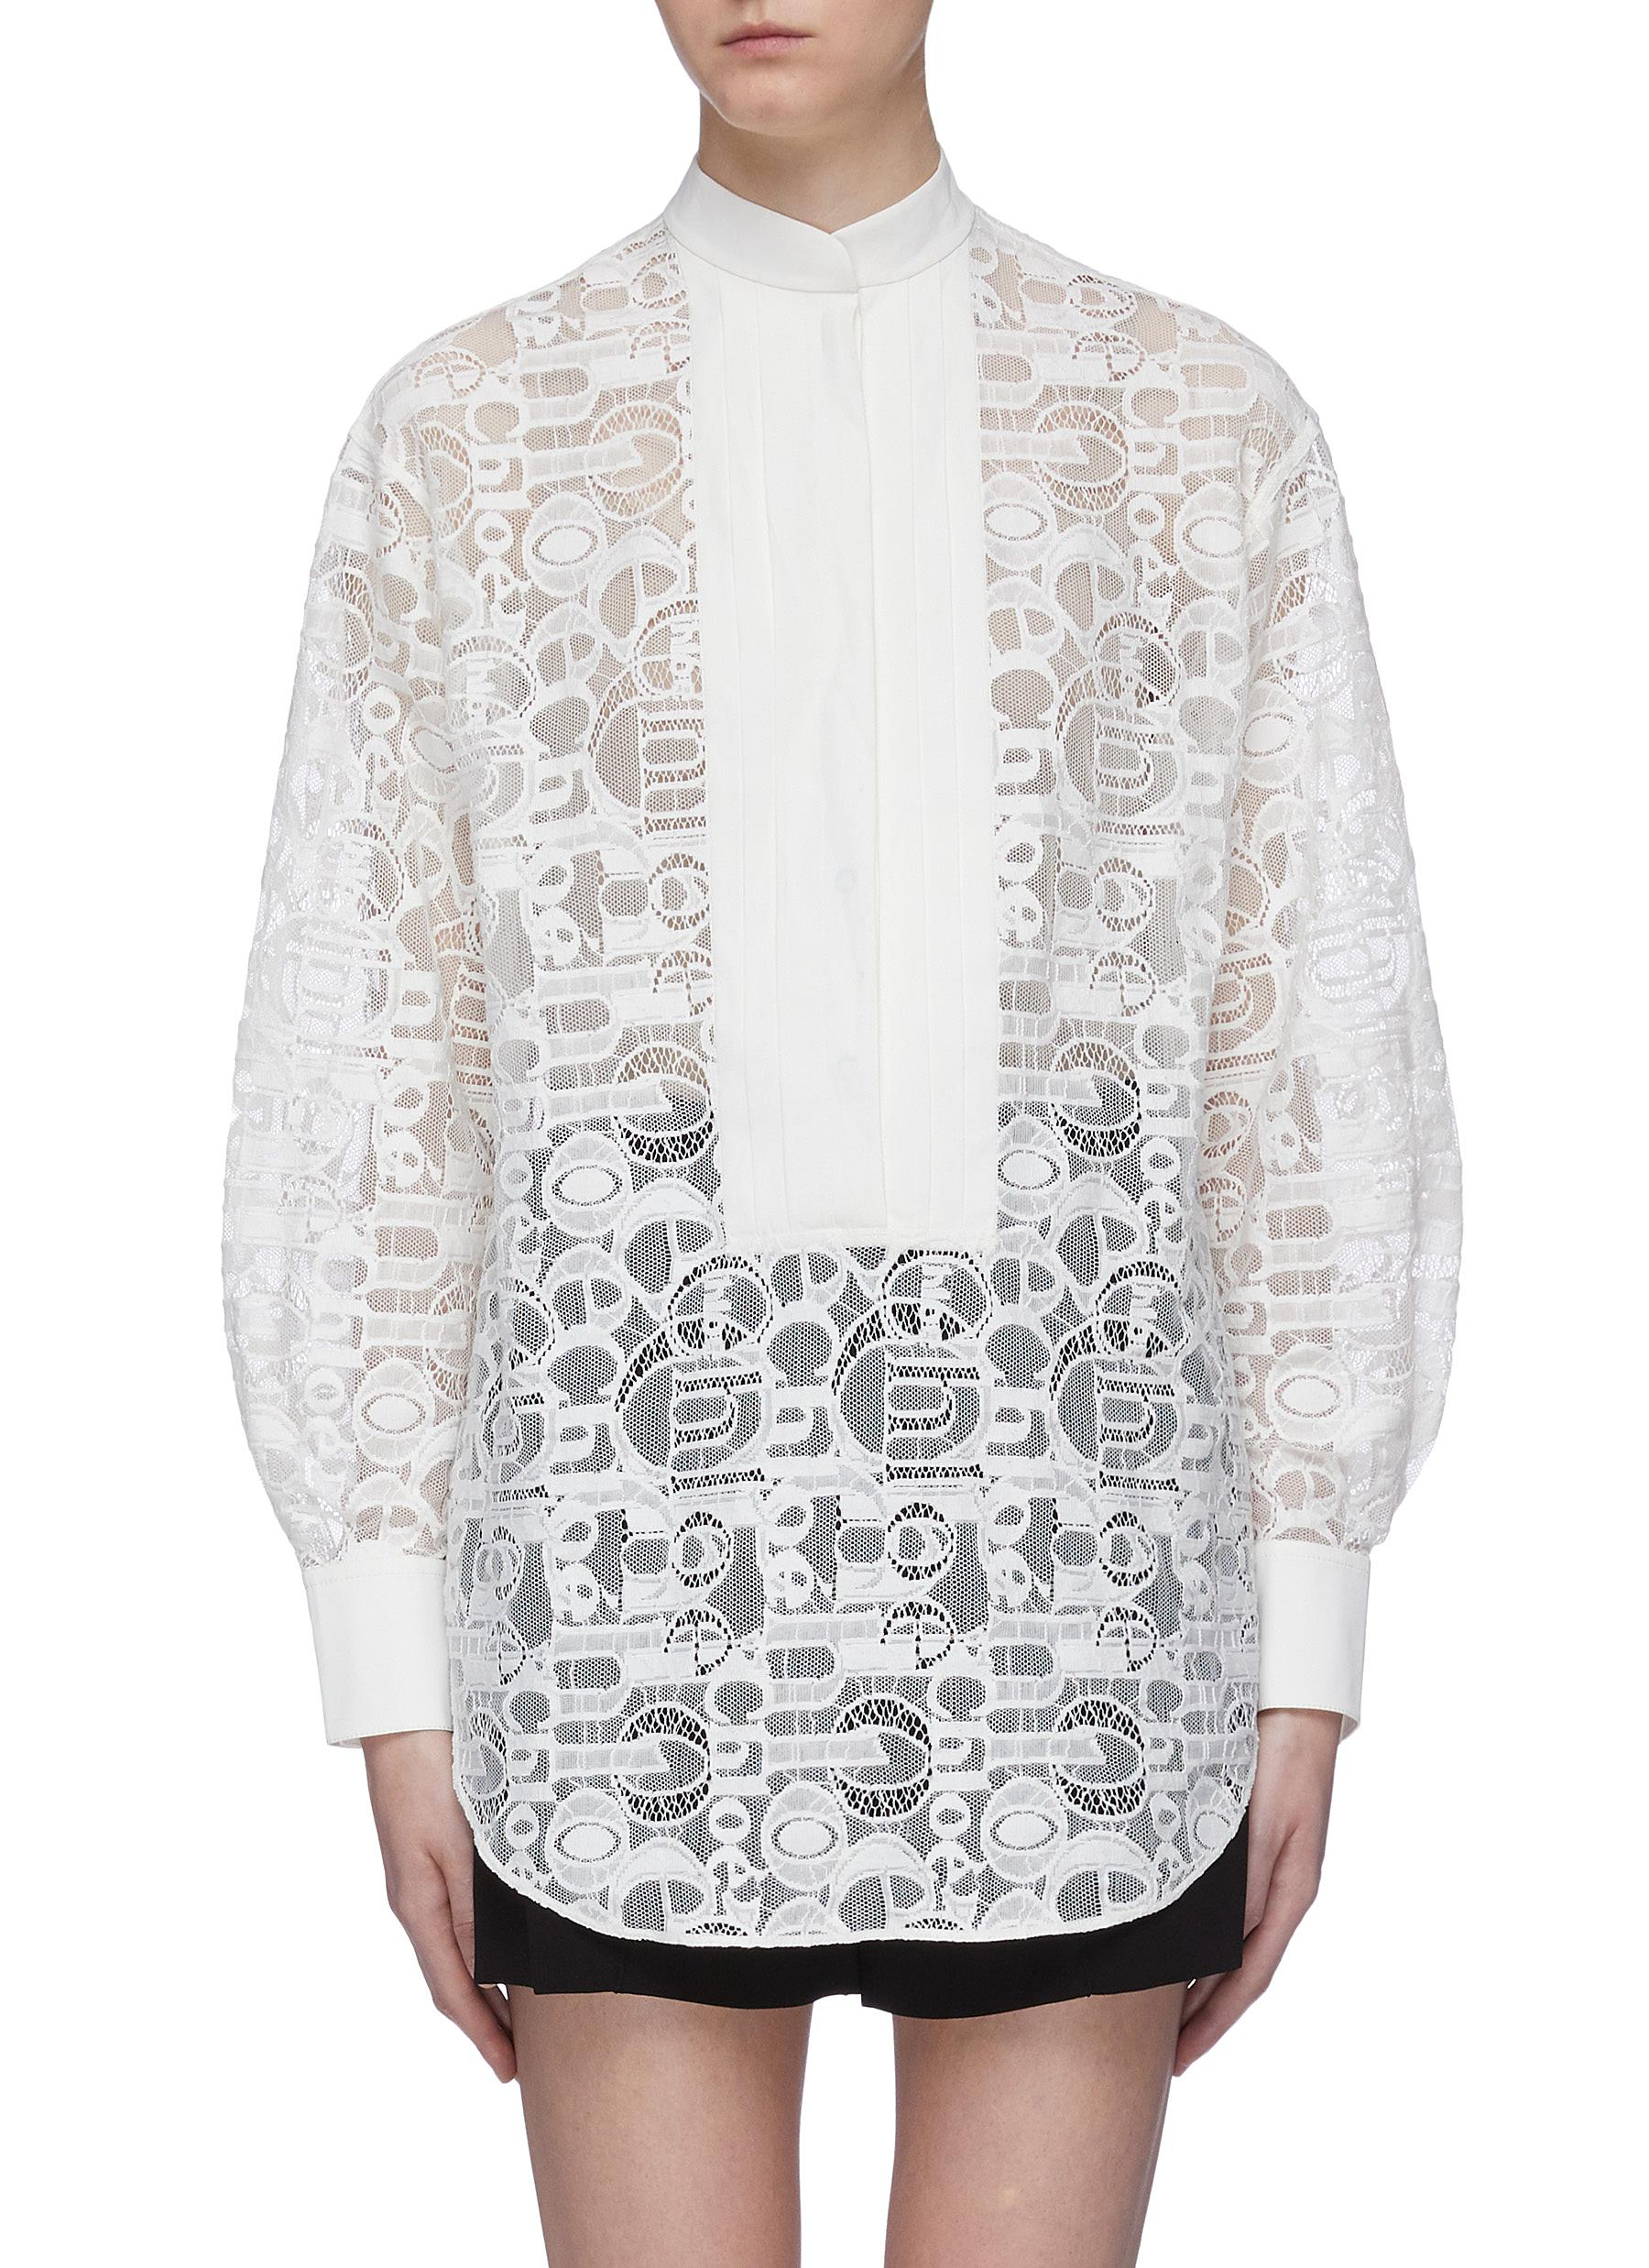 Pleated bib logo lace shirt by Chloé